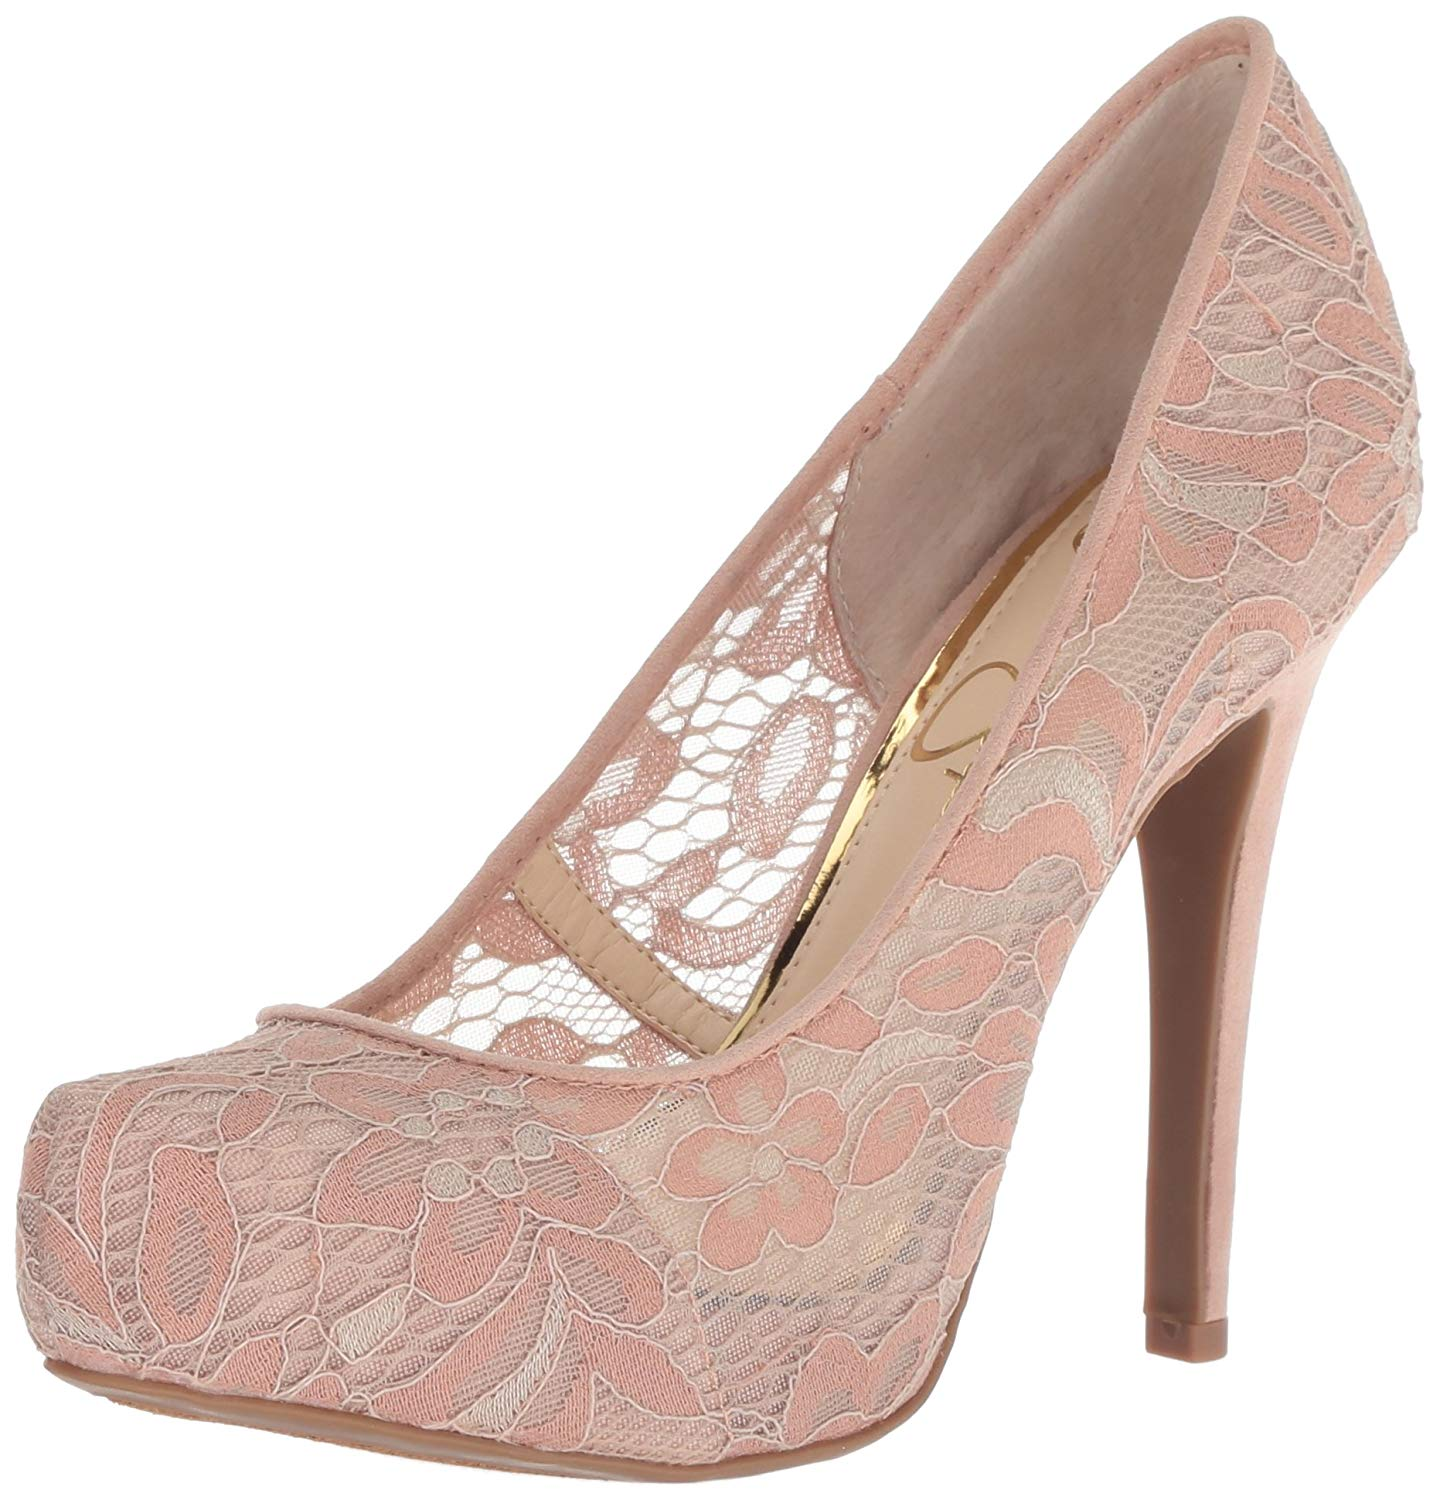 Jessica Simpson Shoes for wife